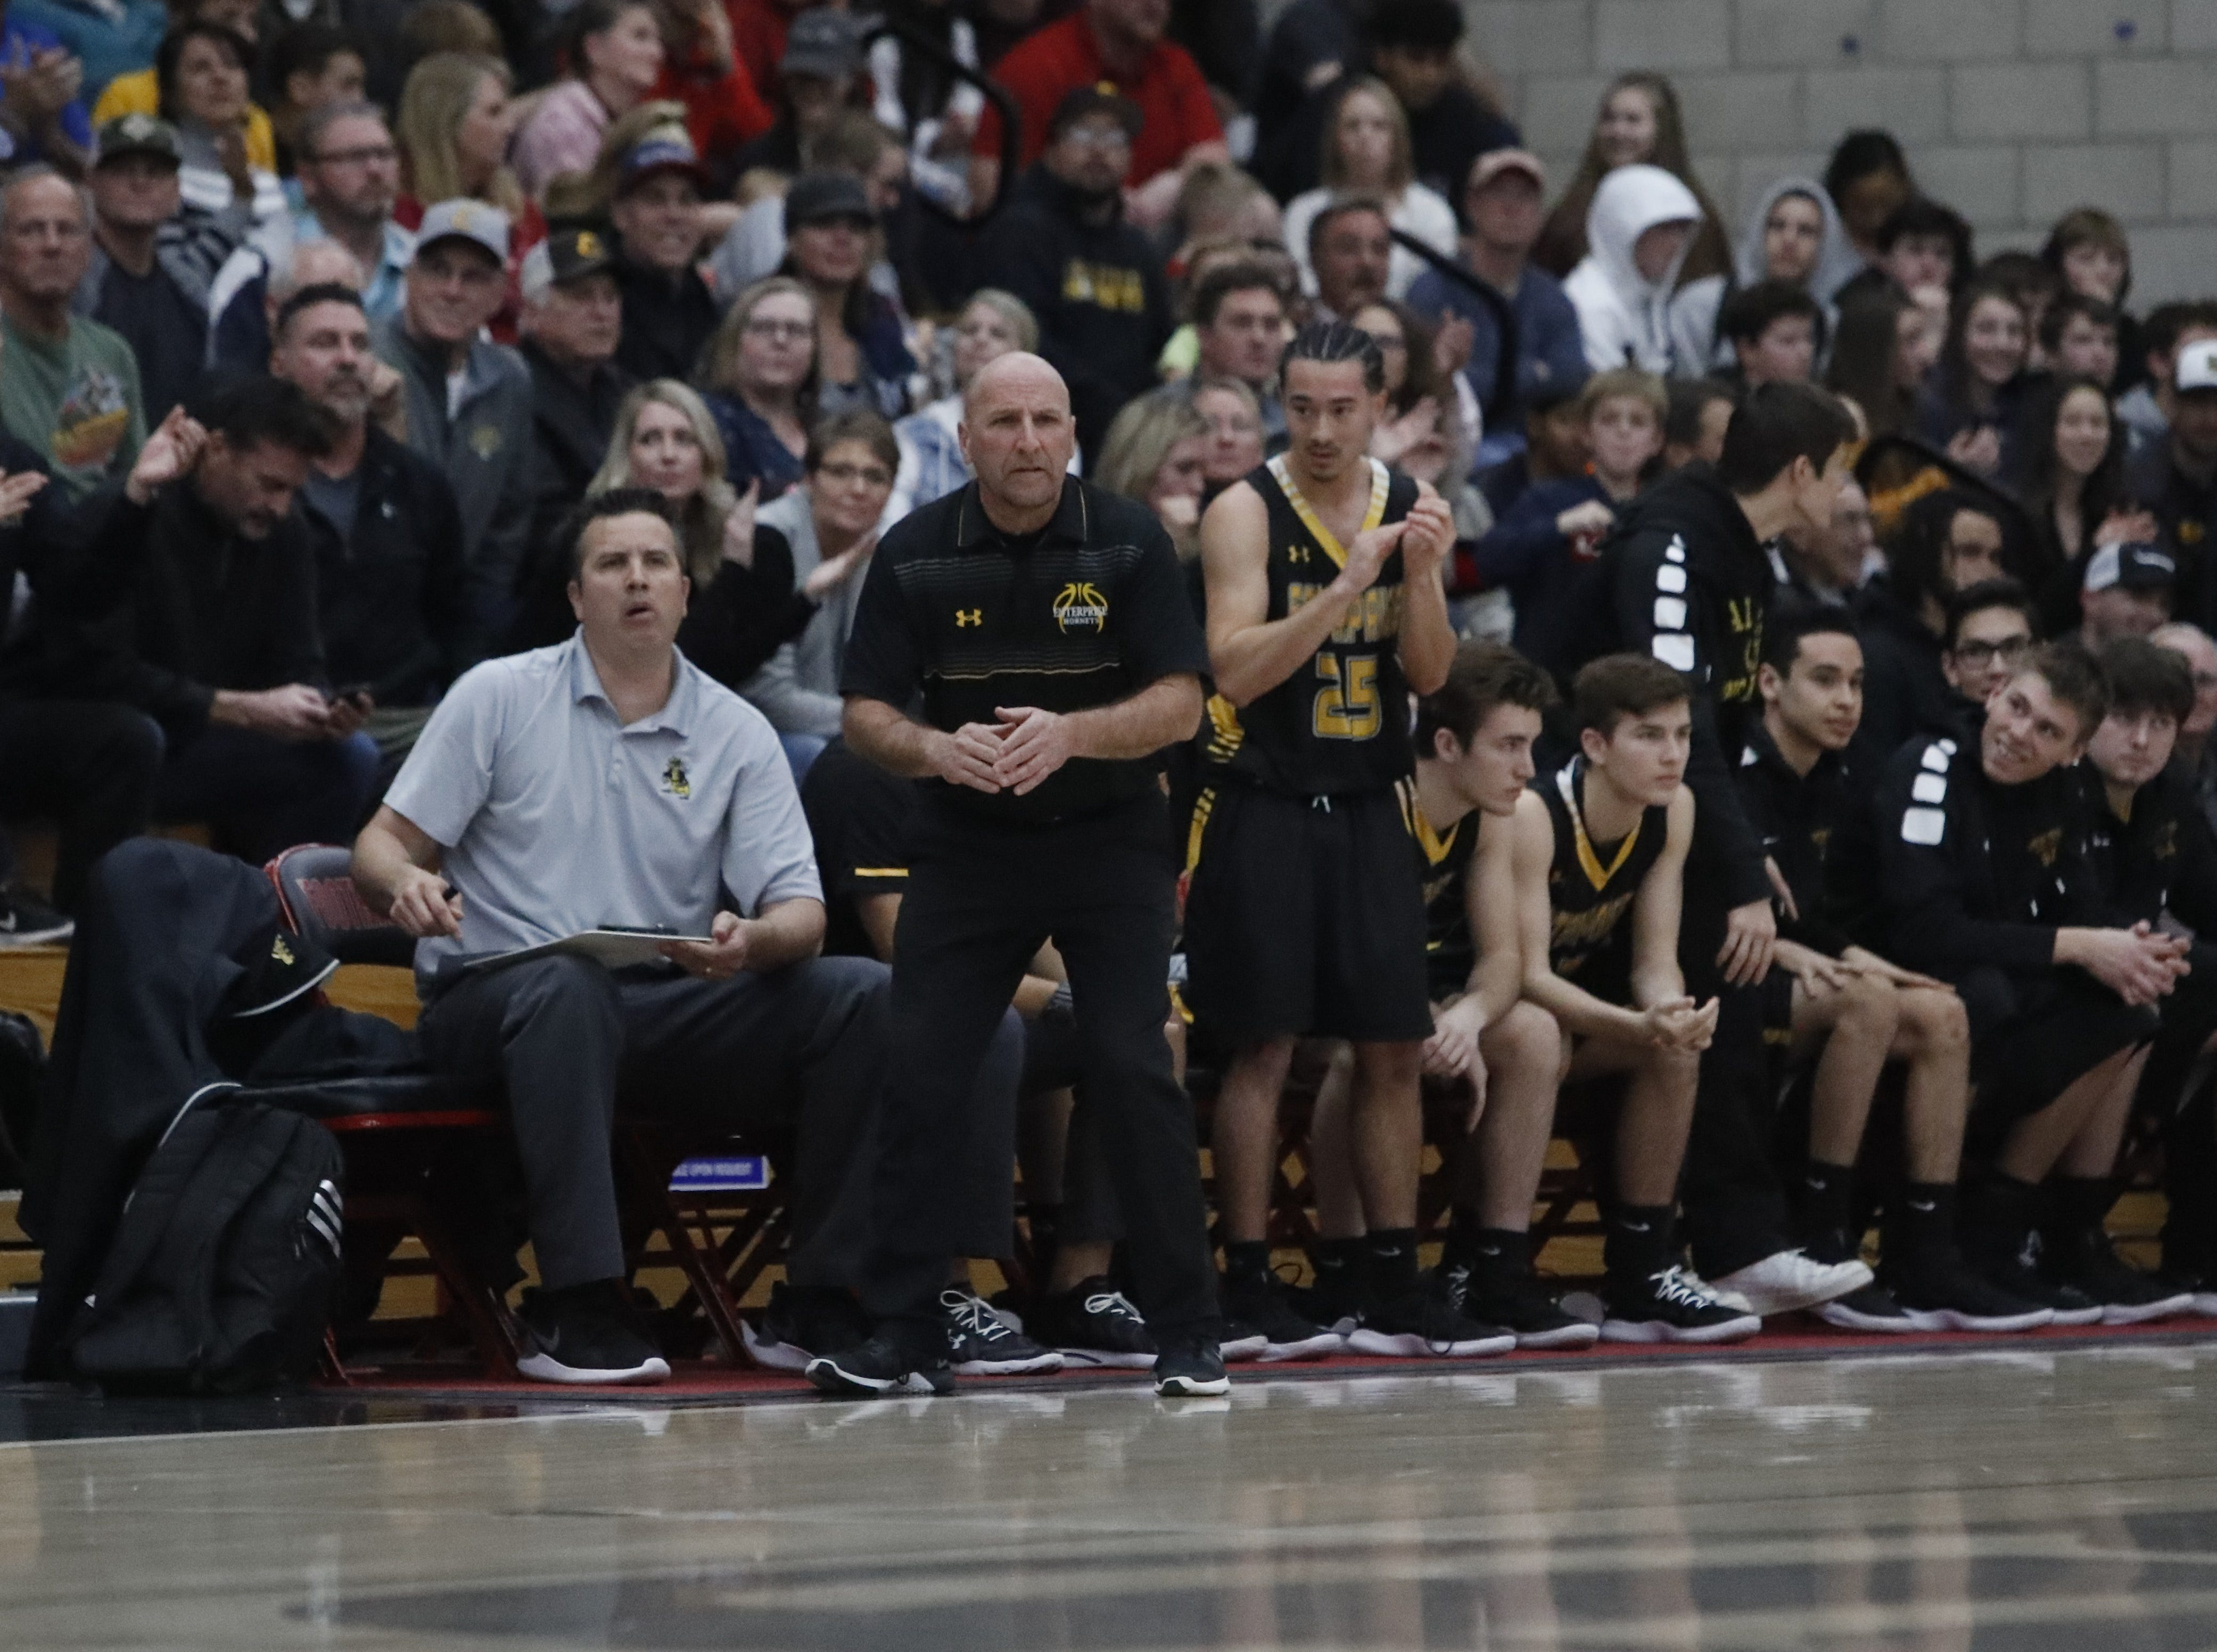 Enterprise coach Jim Deaver motions for a timeout during the Cougars' 55-50 win over the Hornets in the Division III Northern Section semifinals on Wednesday, Feb. 20.